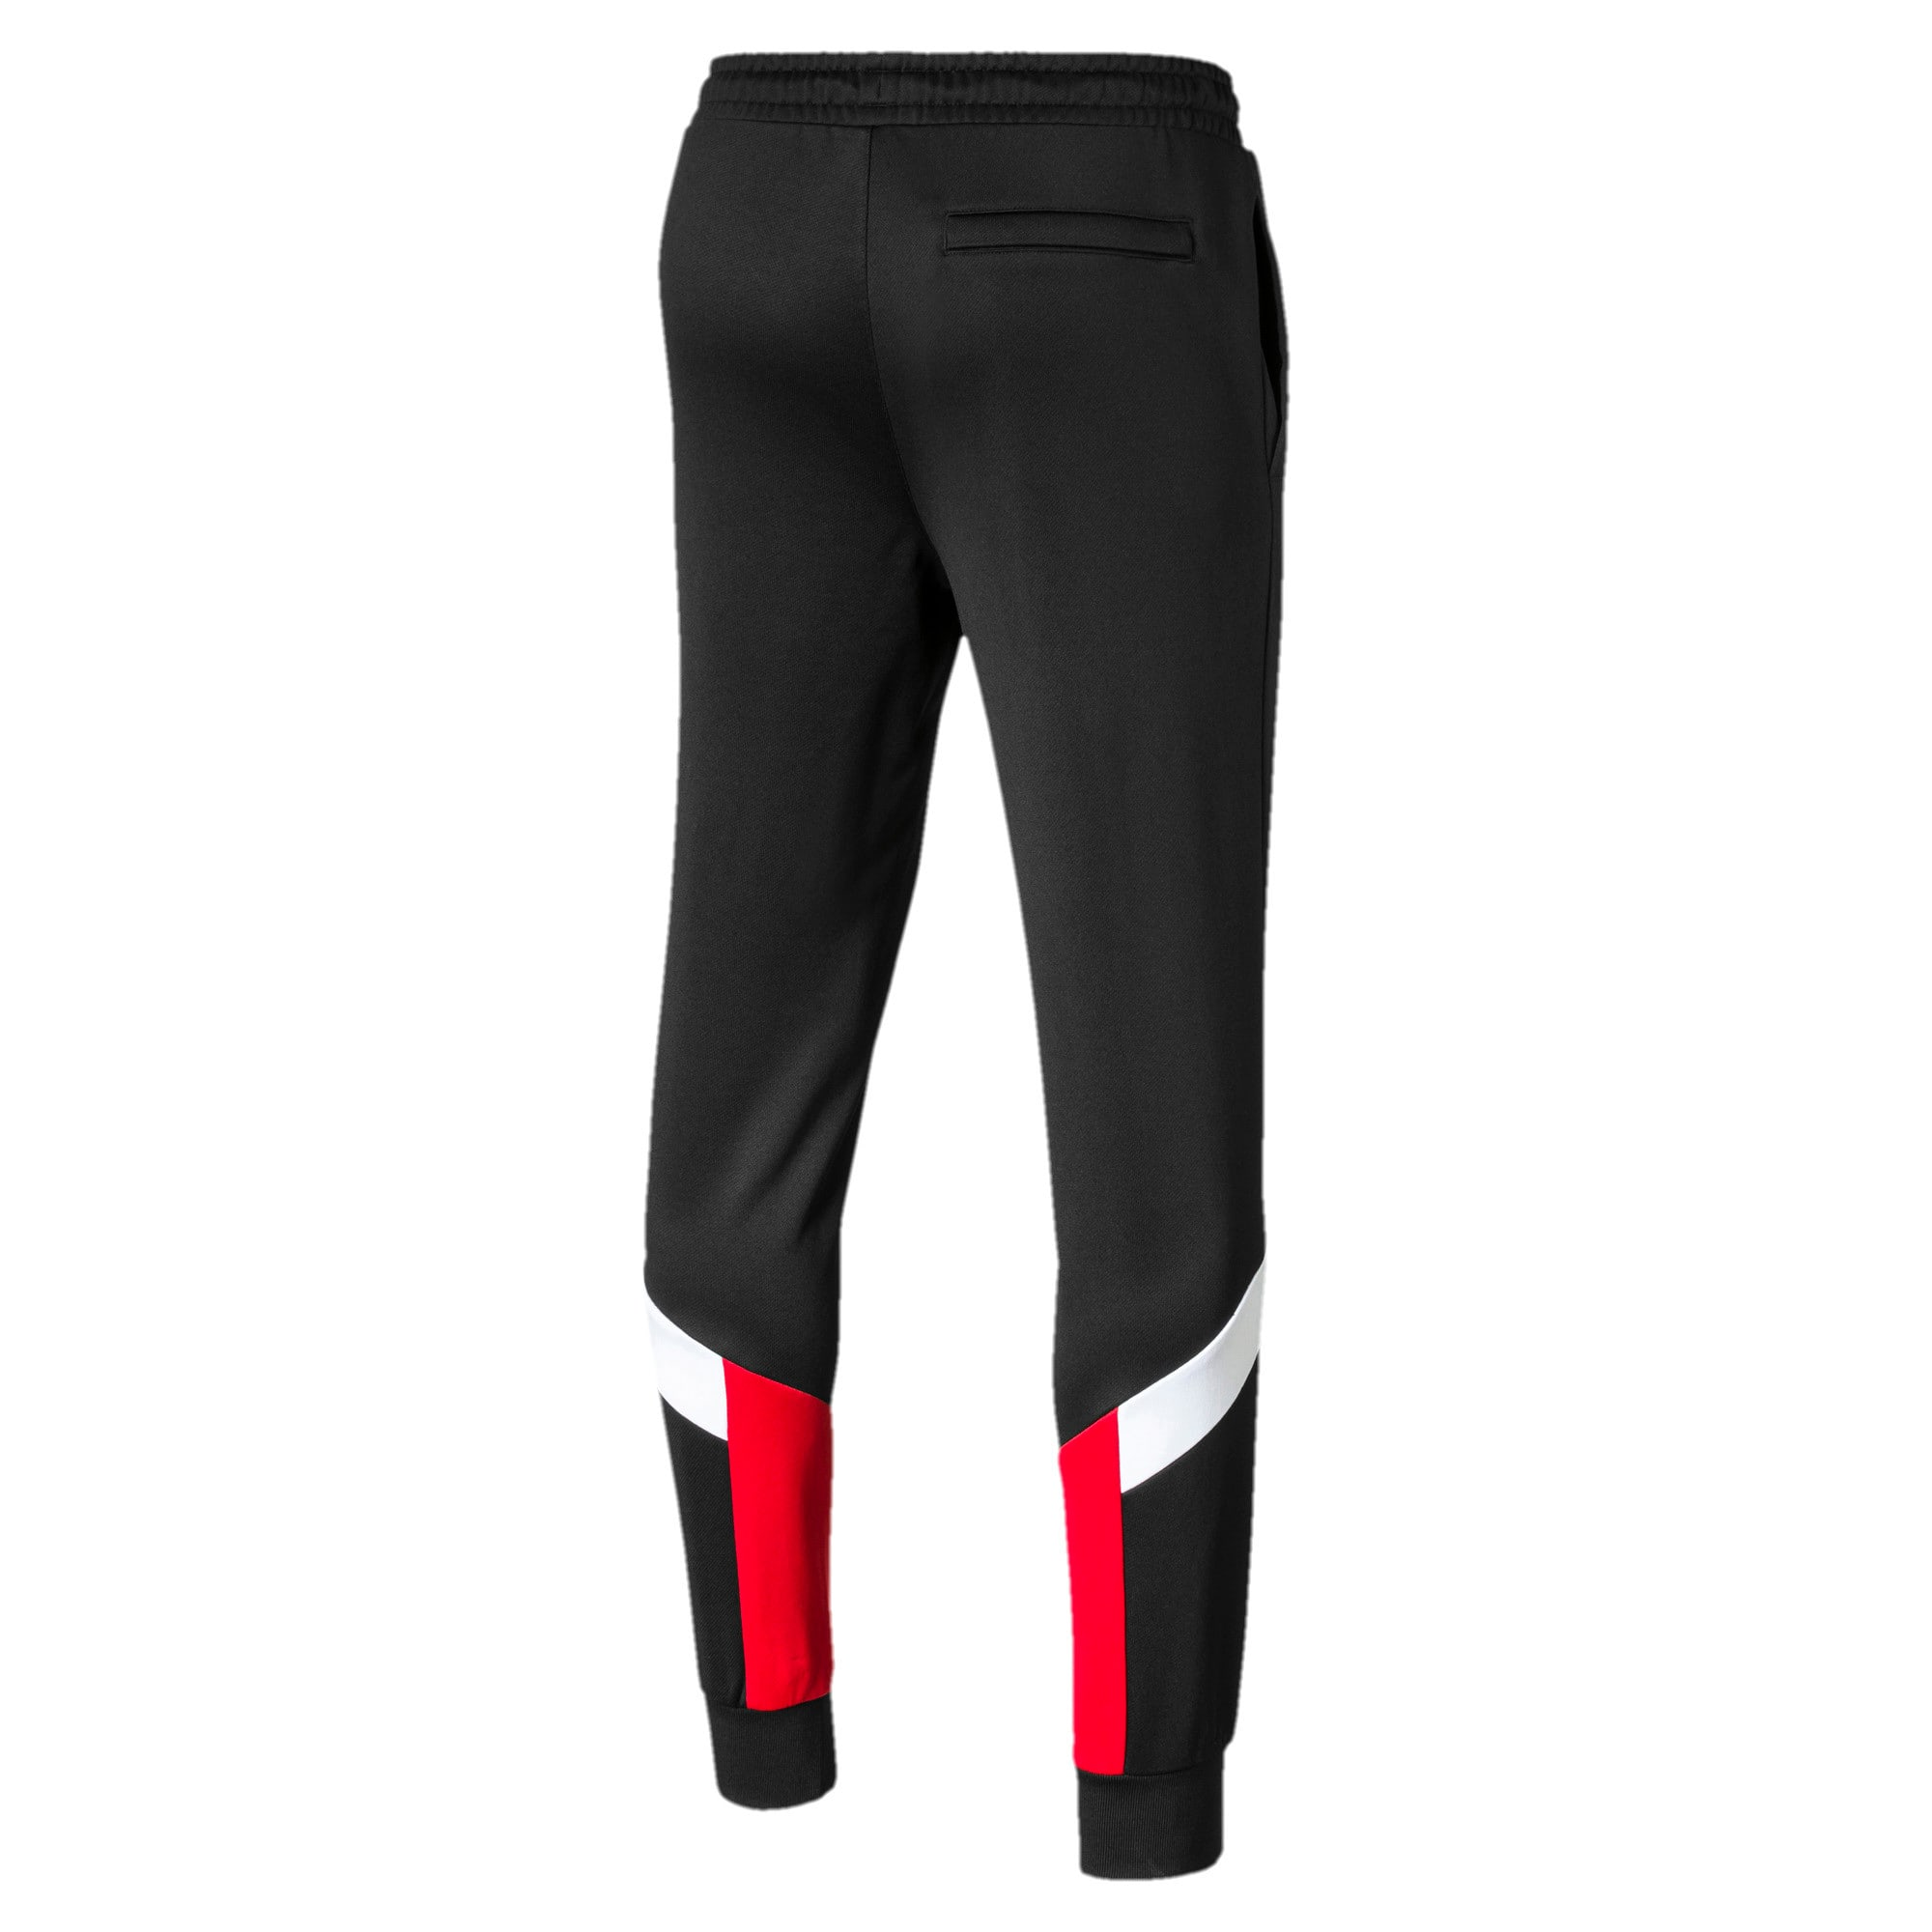 Thumbnail 5 of Iconic MCS Herren Gestrickte Trainingshose, Puma Black-Red combo, medium